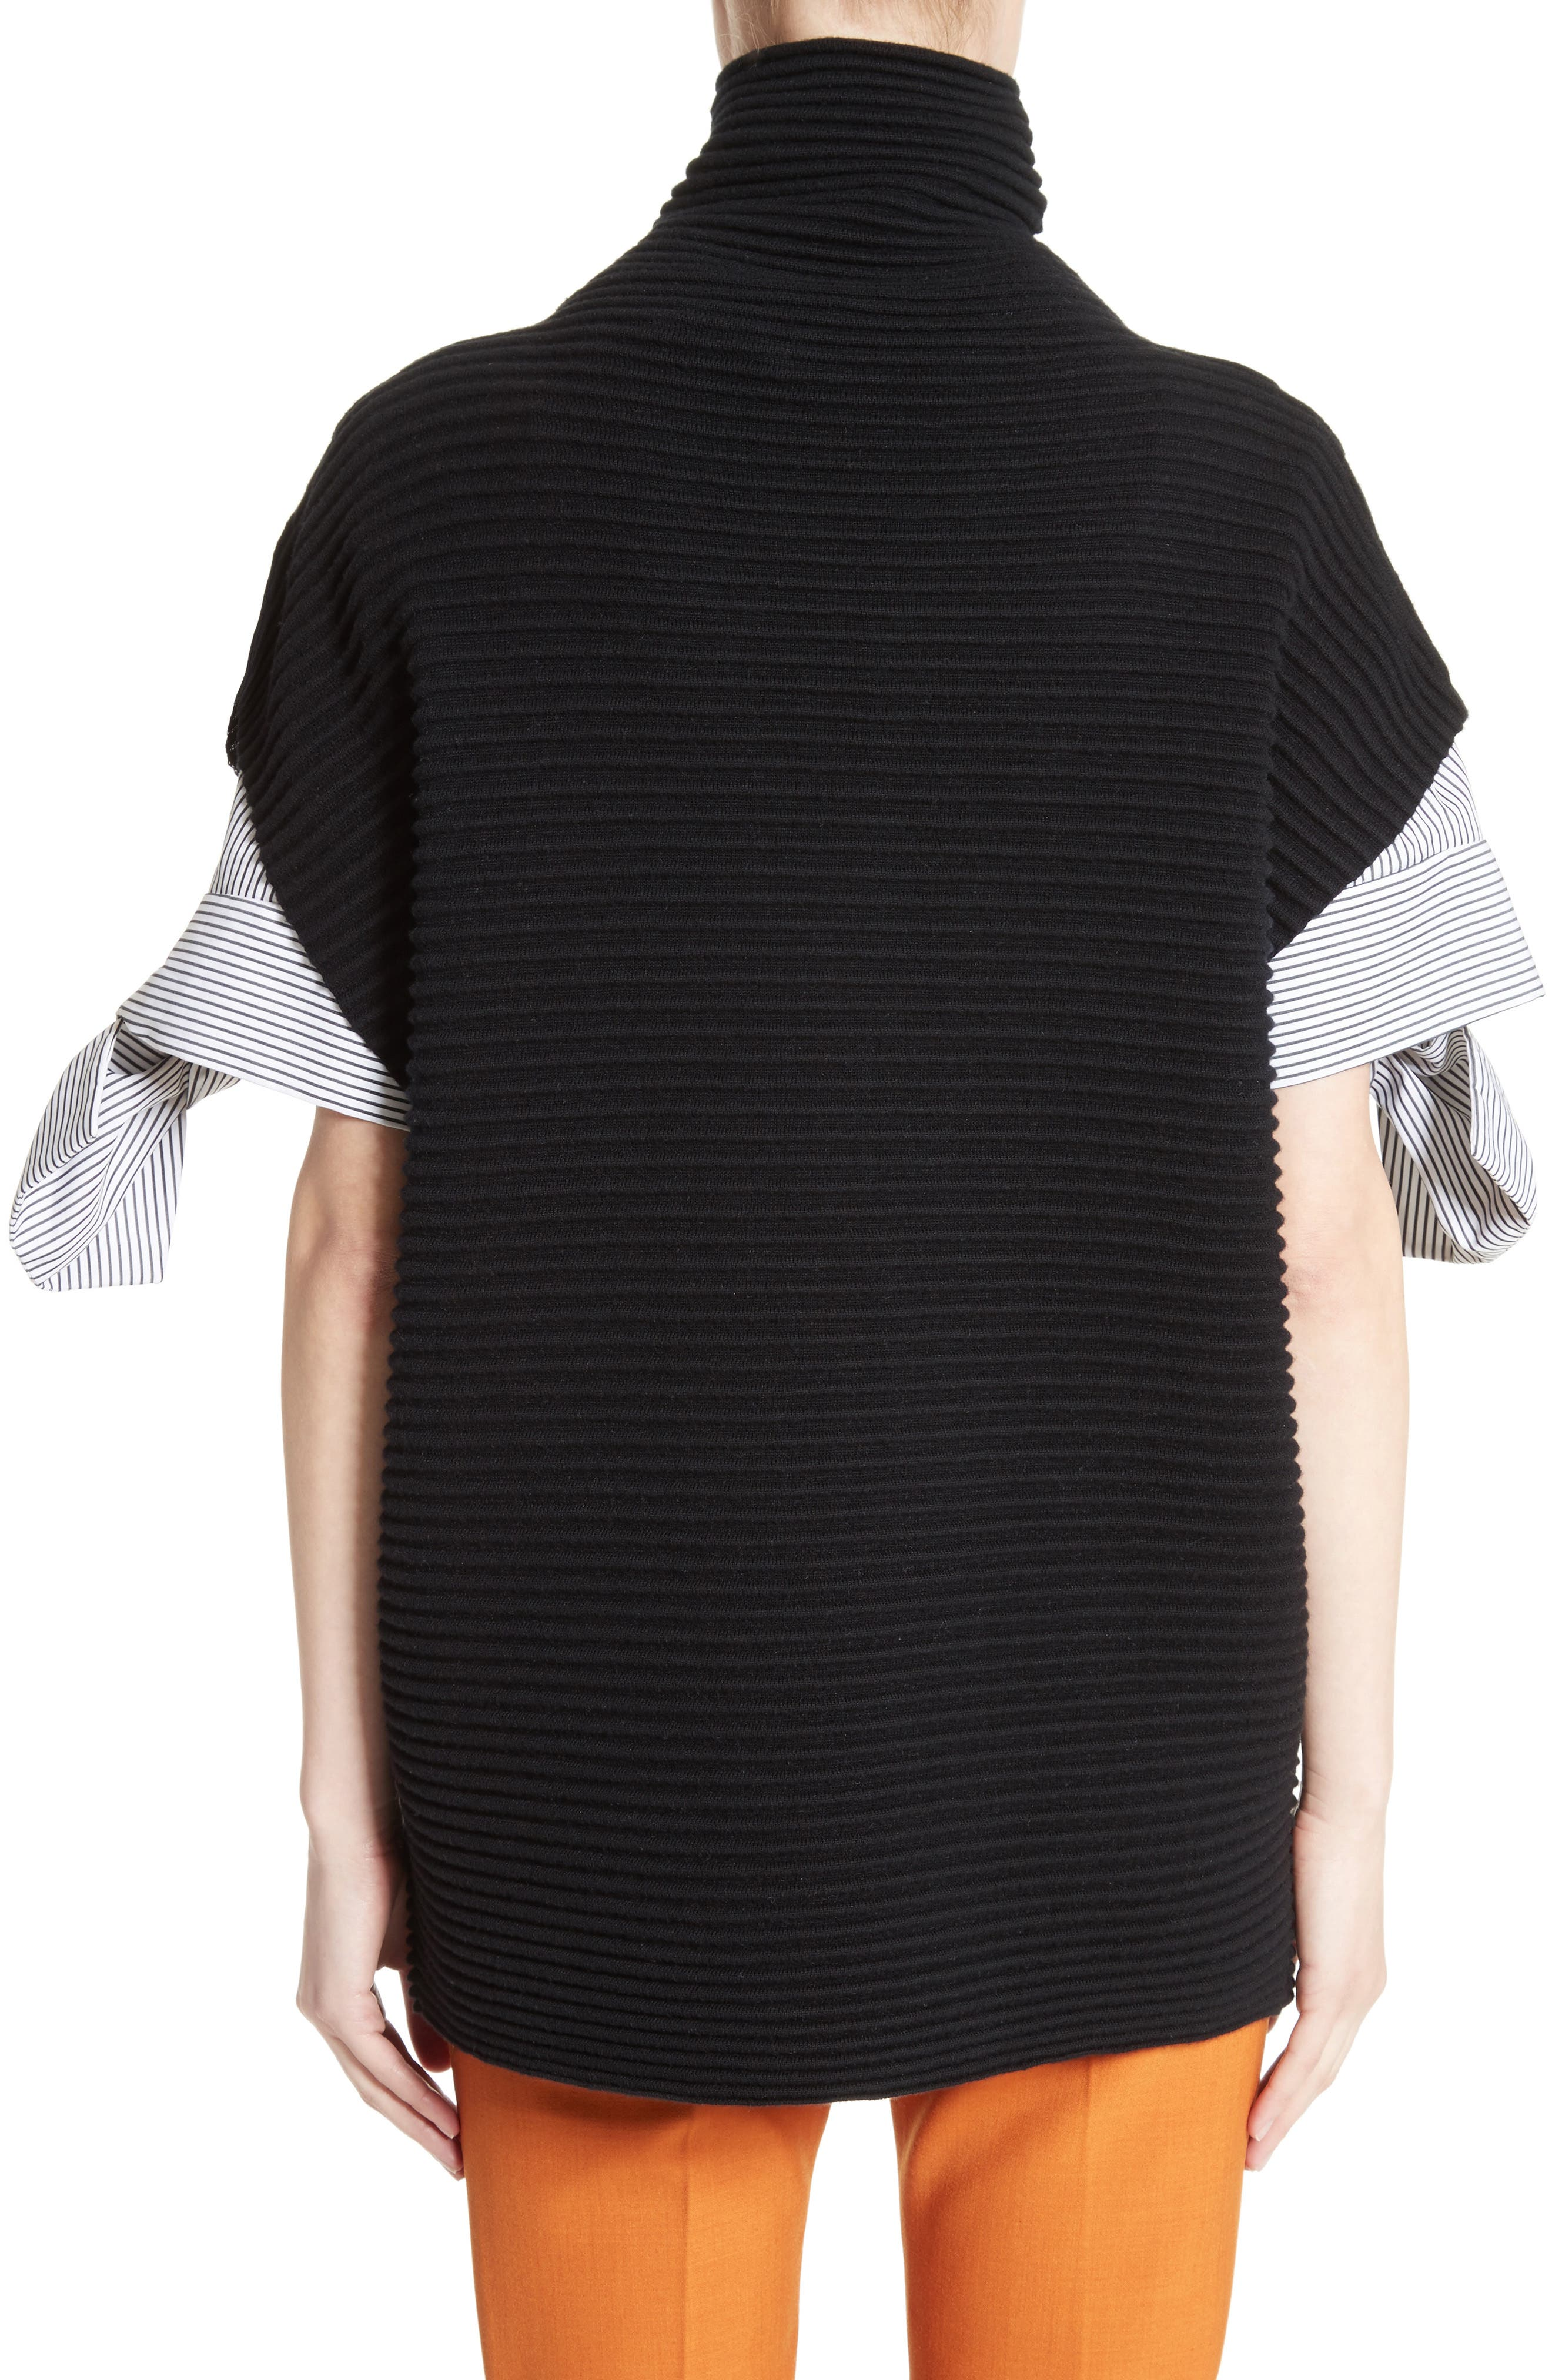 Alternate Image 2  - Victoria, Victoria Beckham Bow Sleeve Funnel Neck Sweater